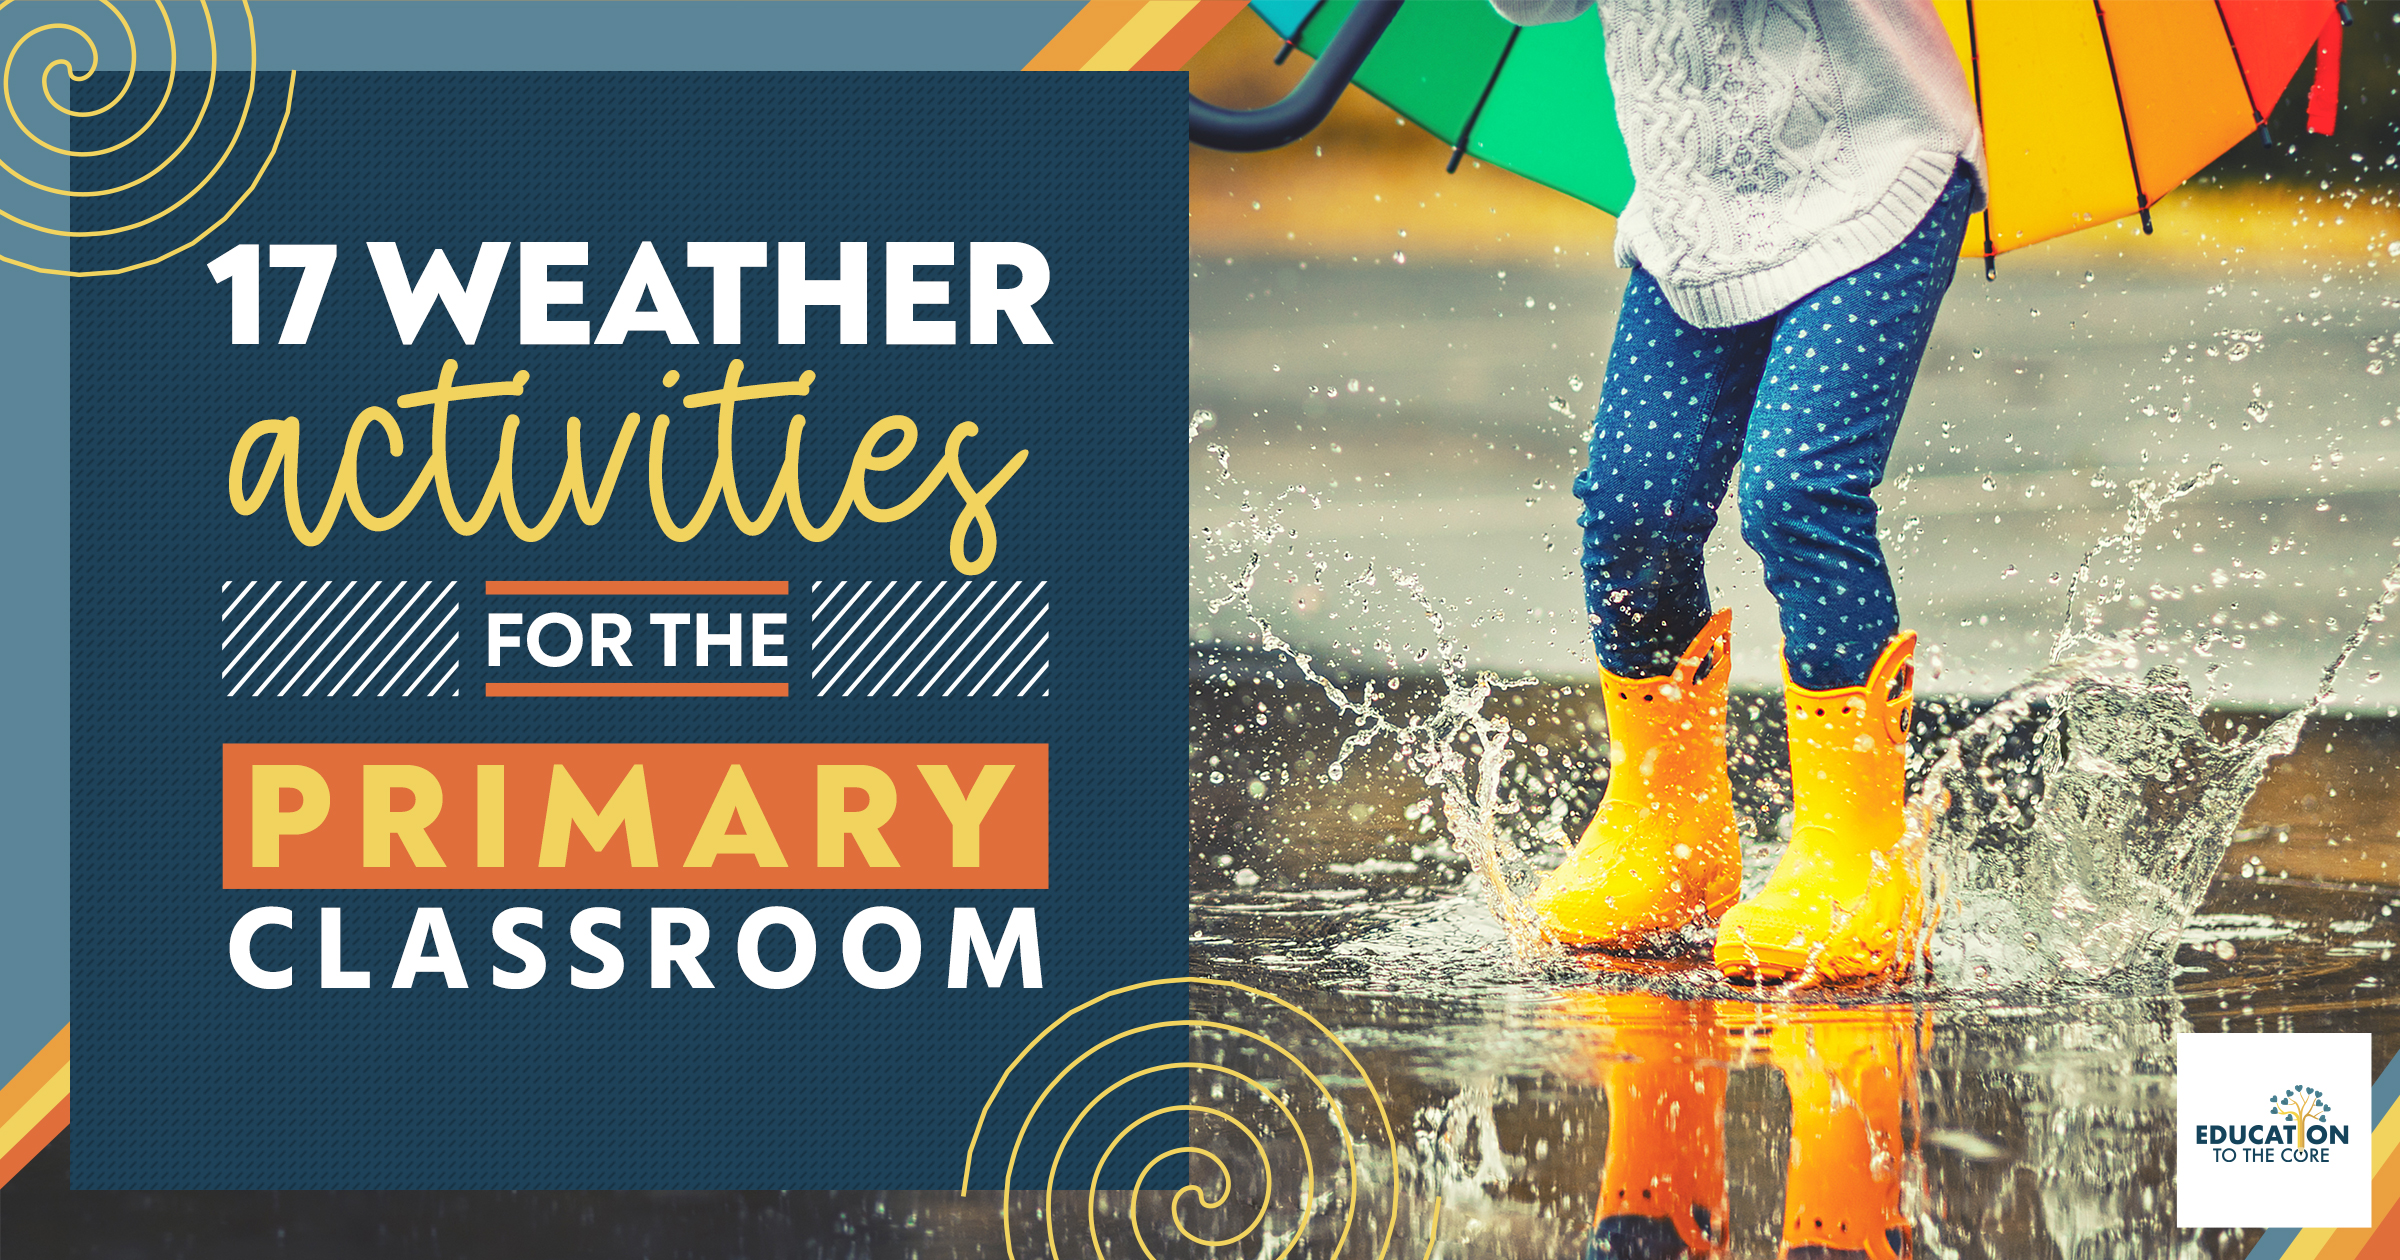 17 Weather Activities for the Primary Classroom